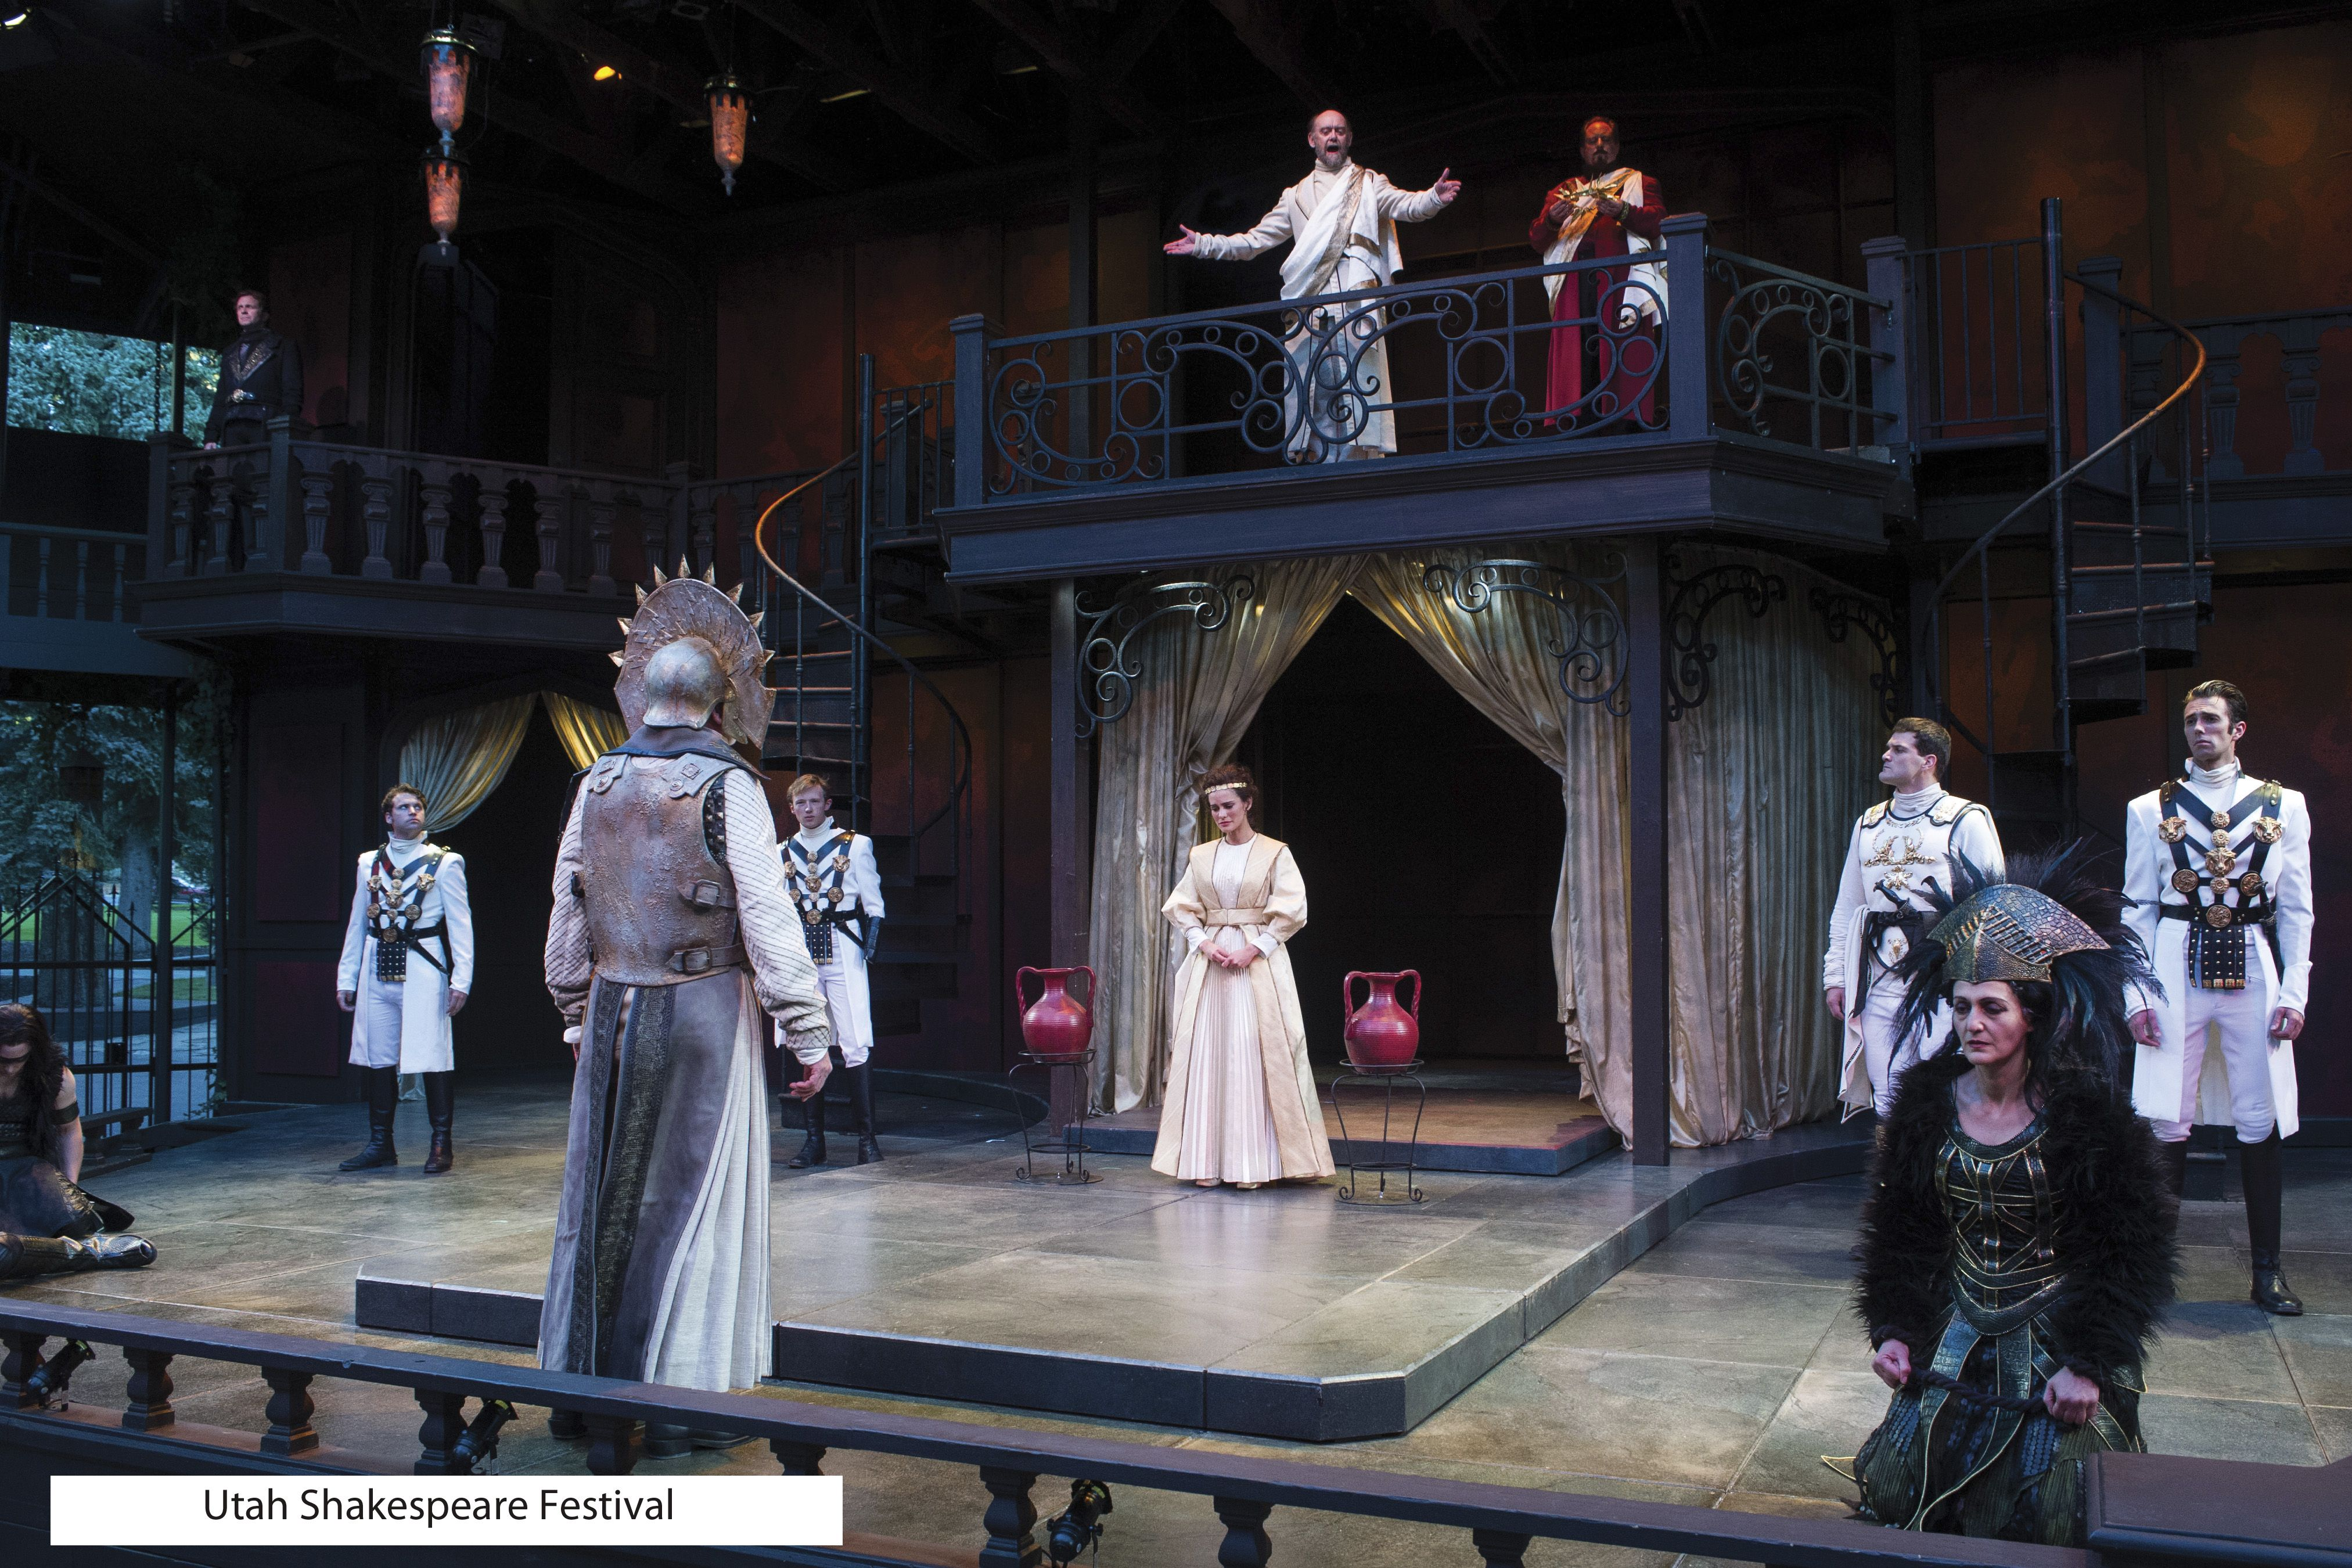 edyyanegxgypuvyimg wpengine netdna cdn com wp  explore utah shakespeare festival theatre stage and more